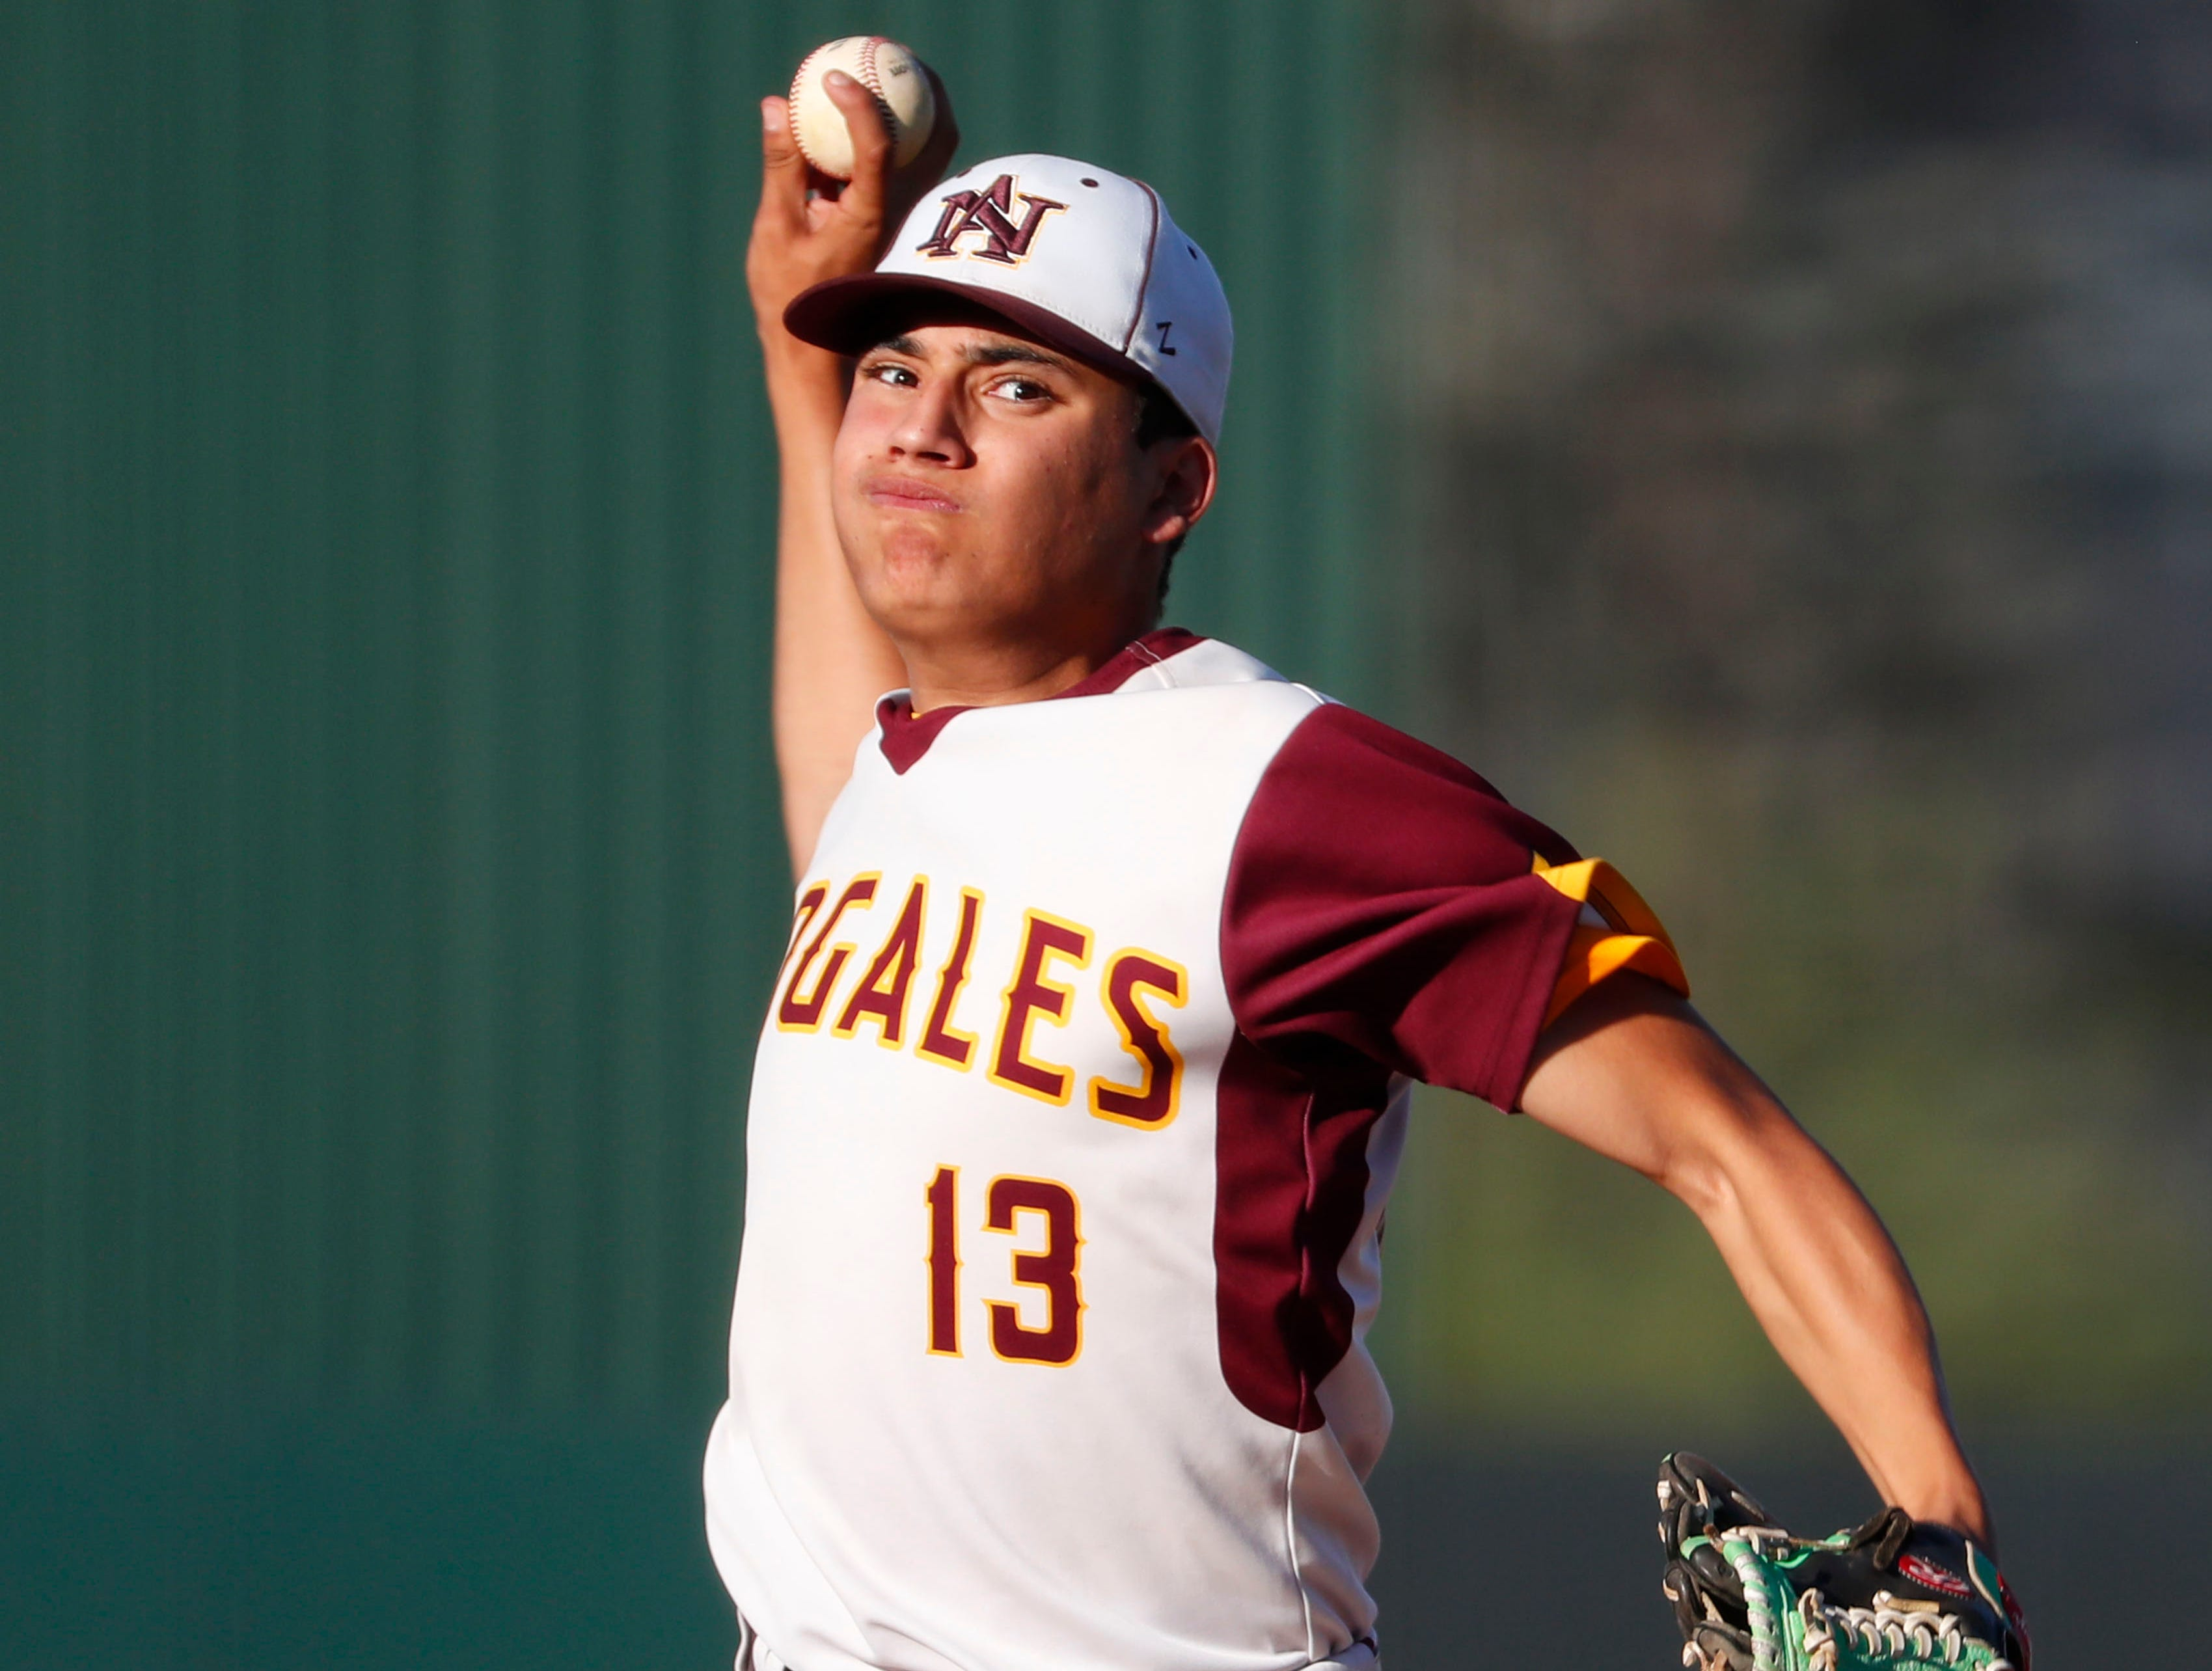 Nogales' Gerardo Martinez (13) throws against Horizon during the 5A State Baseball Championship in Tempe, Ariz. May 14, 2019.